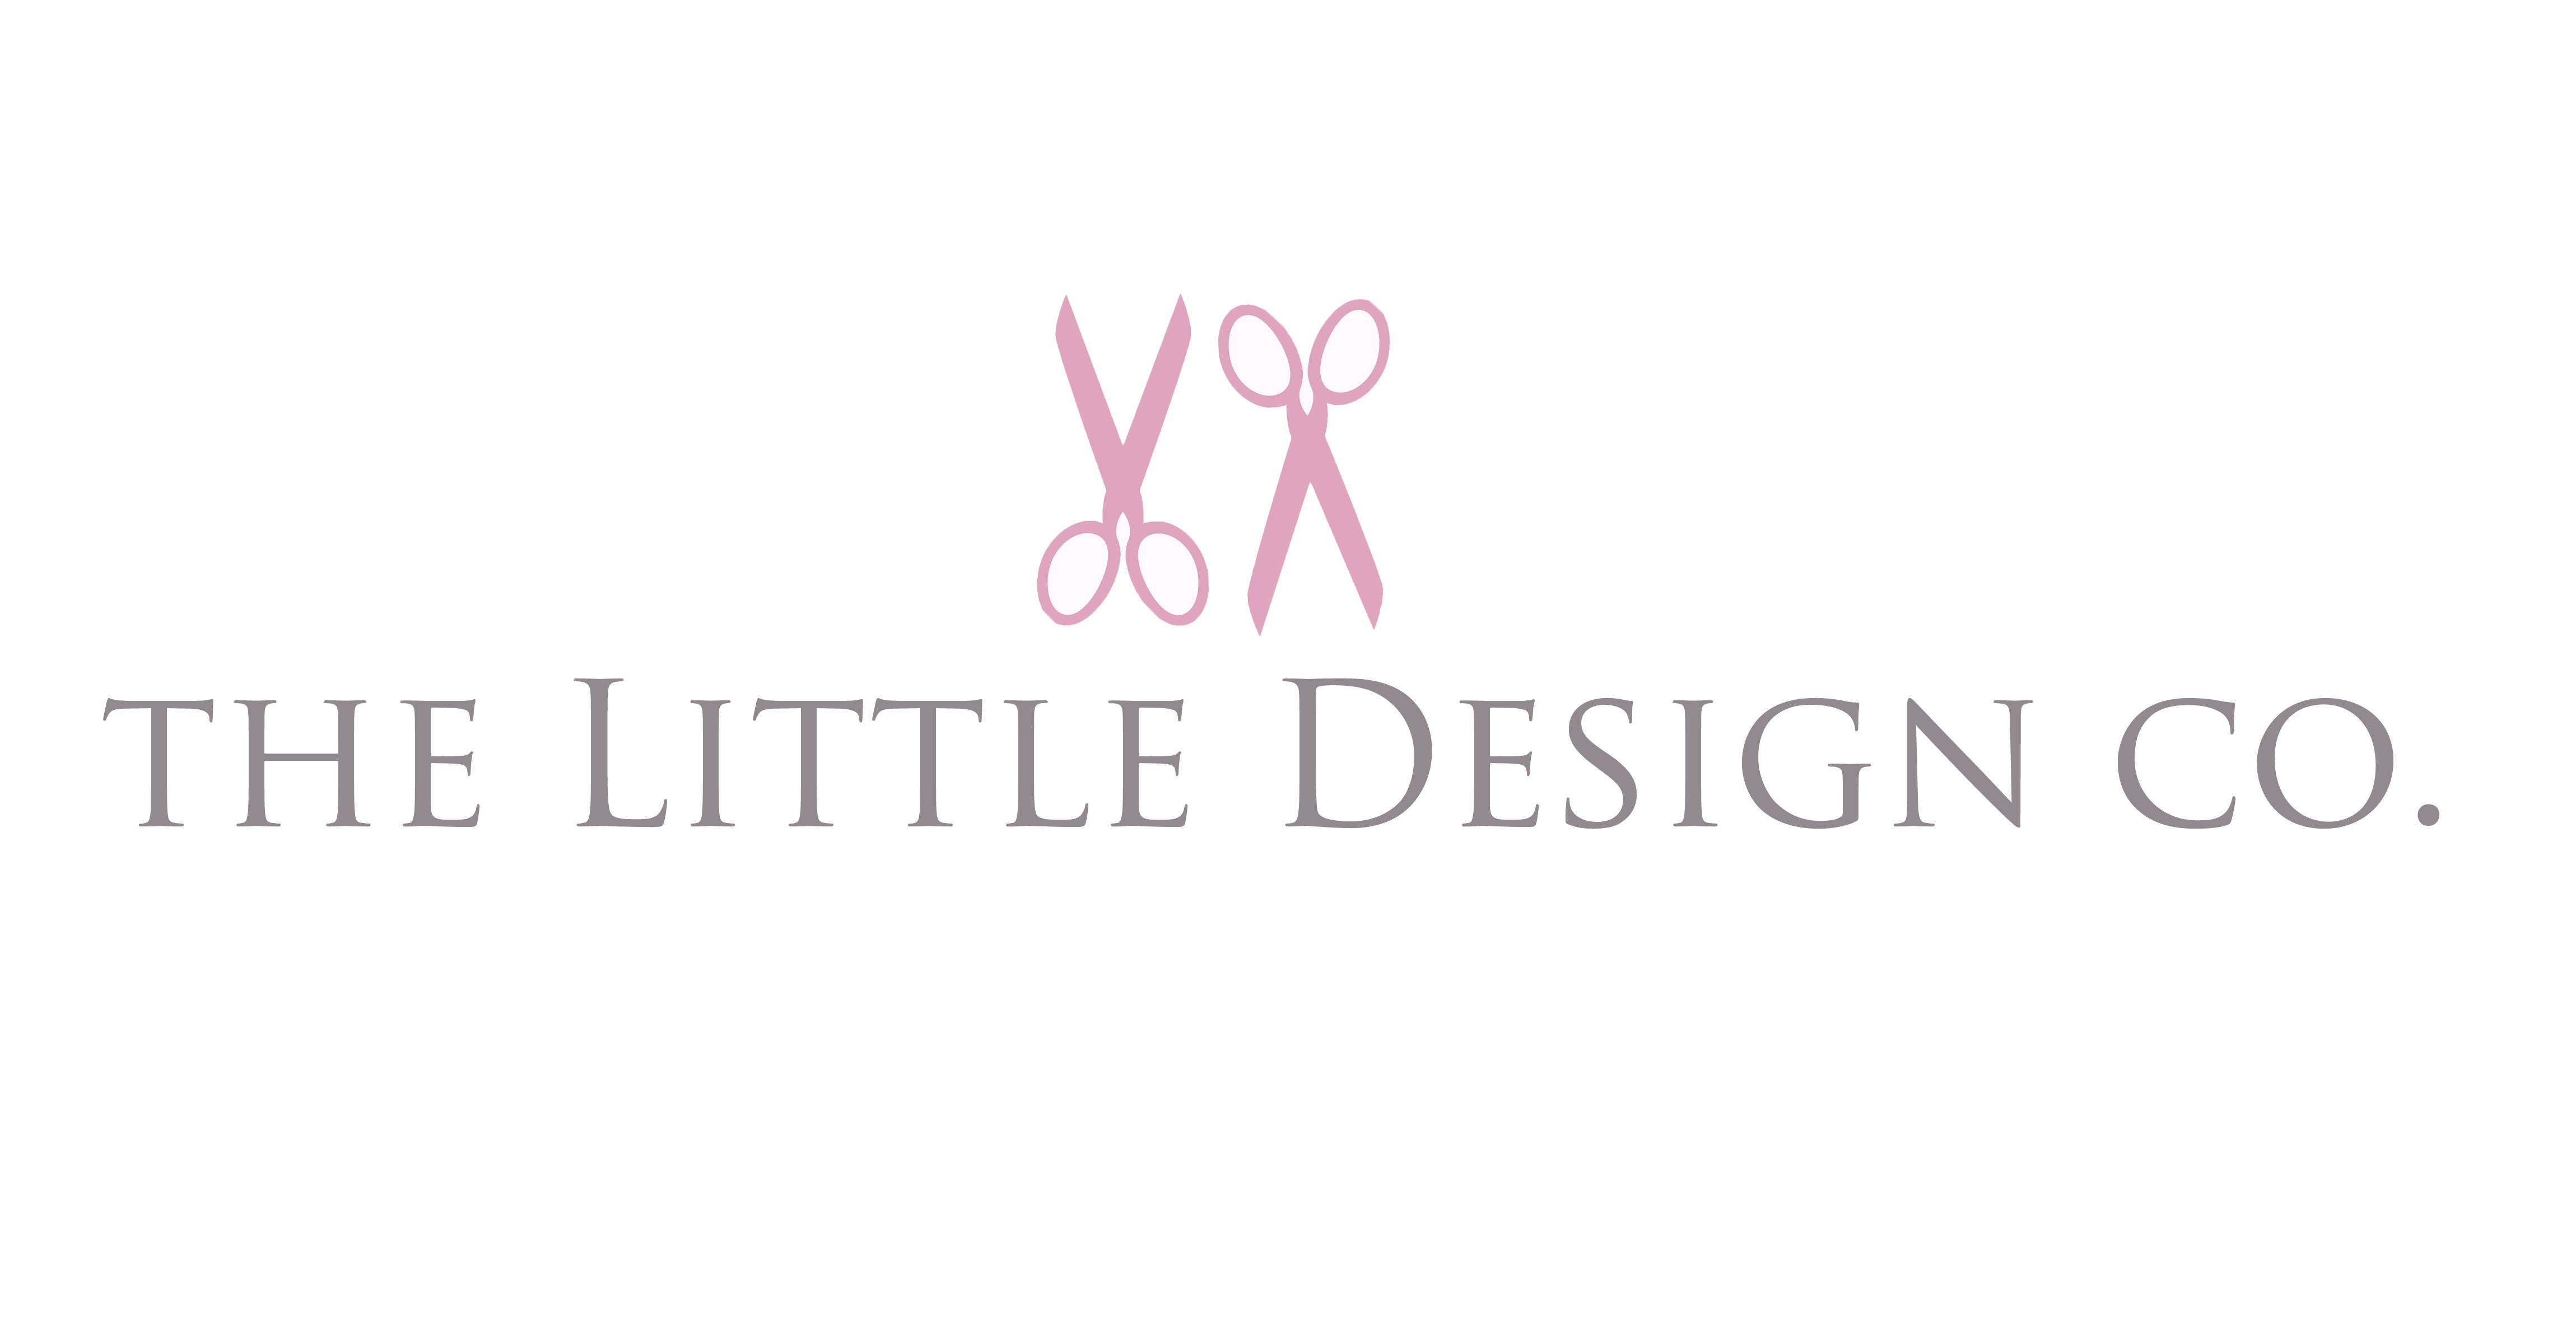 The Little Design Co